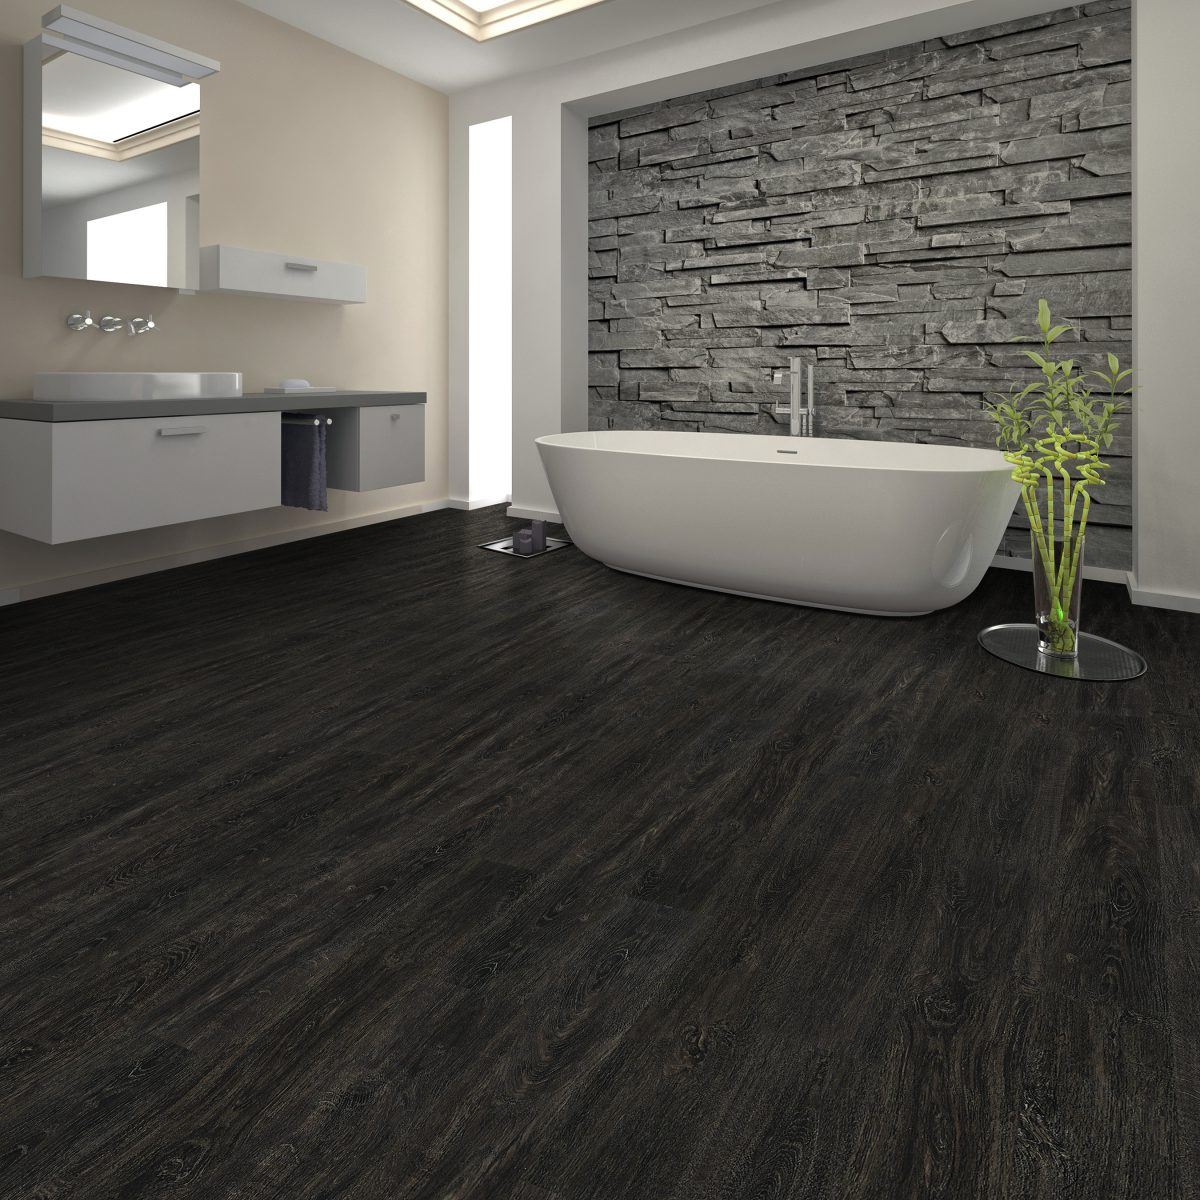 5 Flooring Options for Kitchens and Bathrooms | Empire Today Blog on american shower and bath, bedroom and bath, american kitchen cabinets placerville, american kitchen and bar, american kitchen & bath inc,